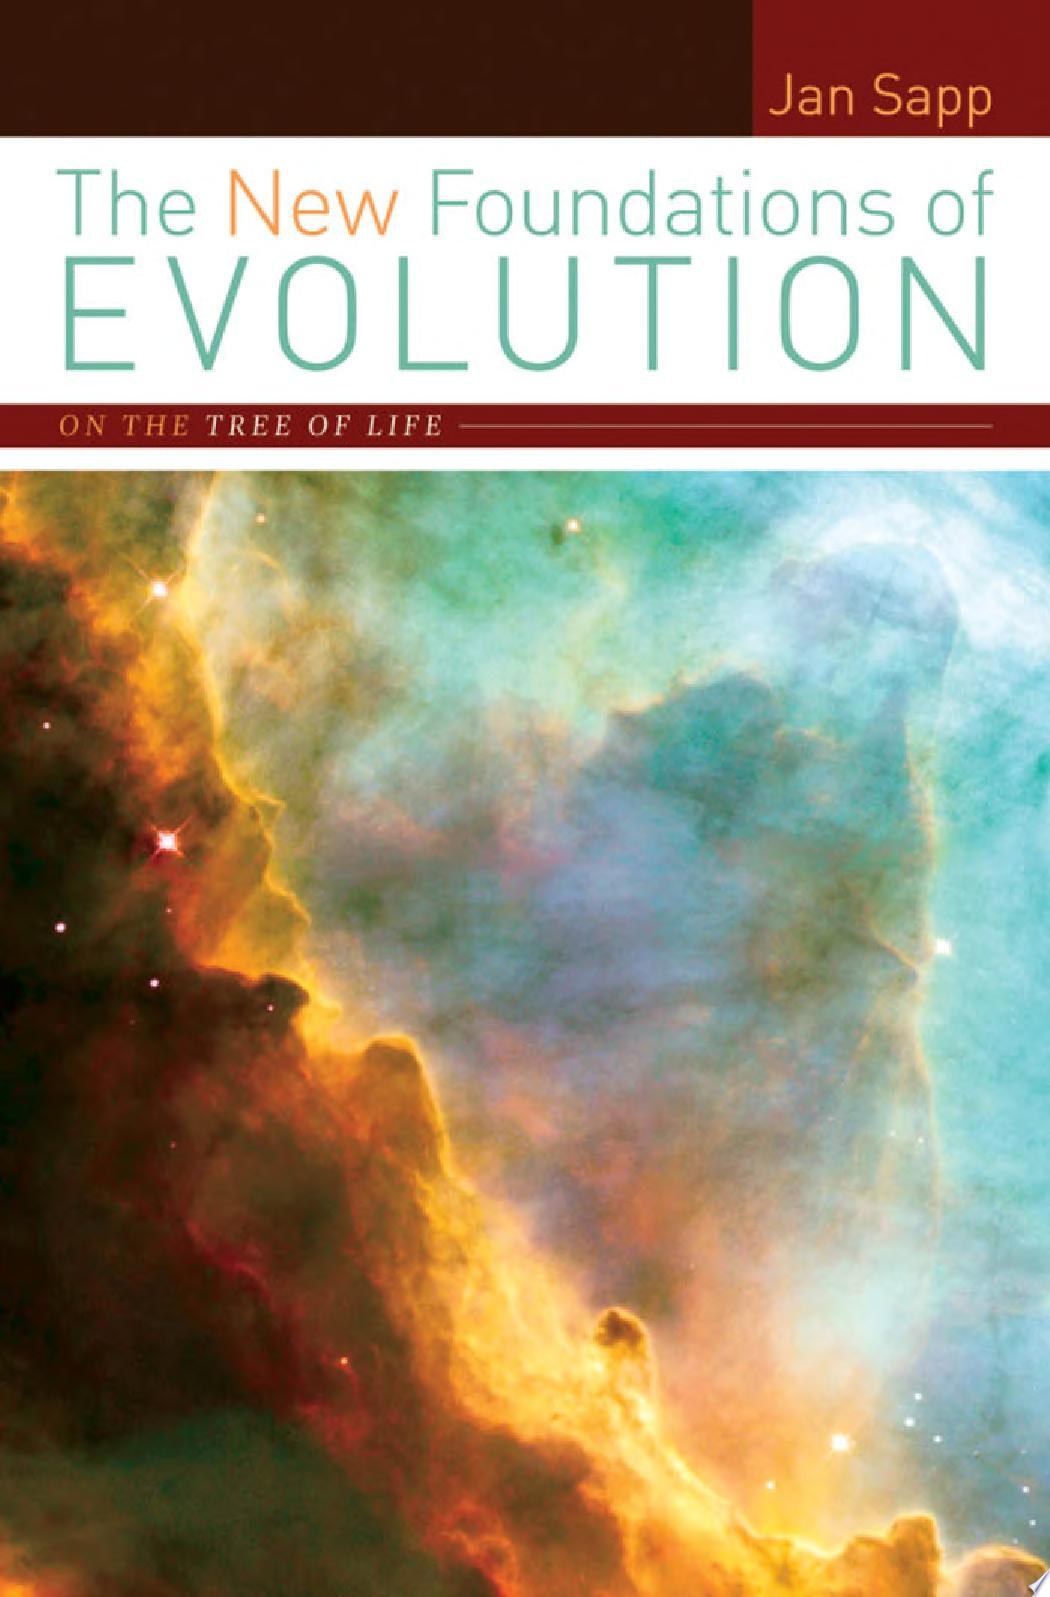 The New Foundations of Evolution